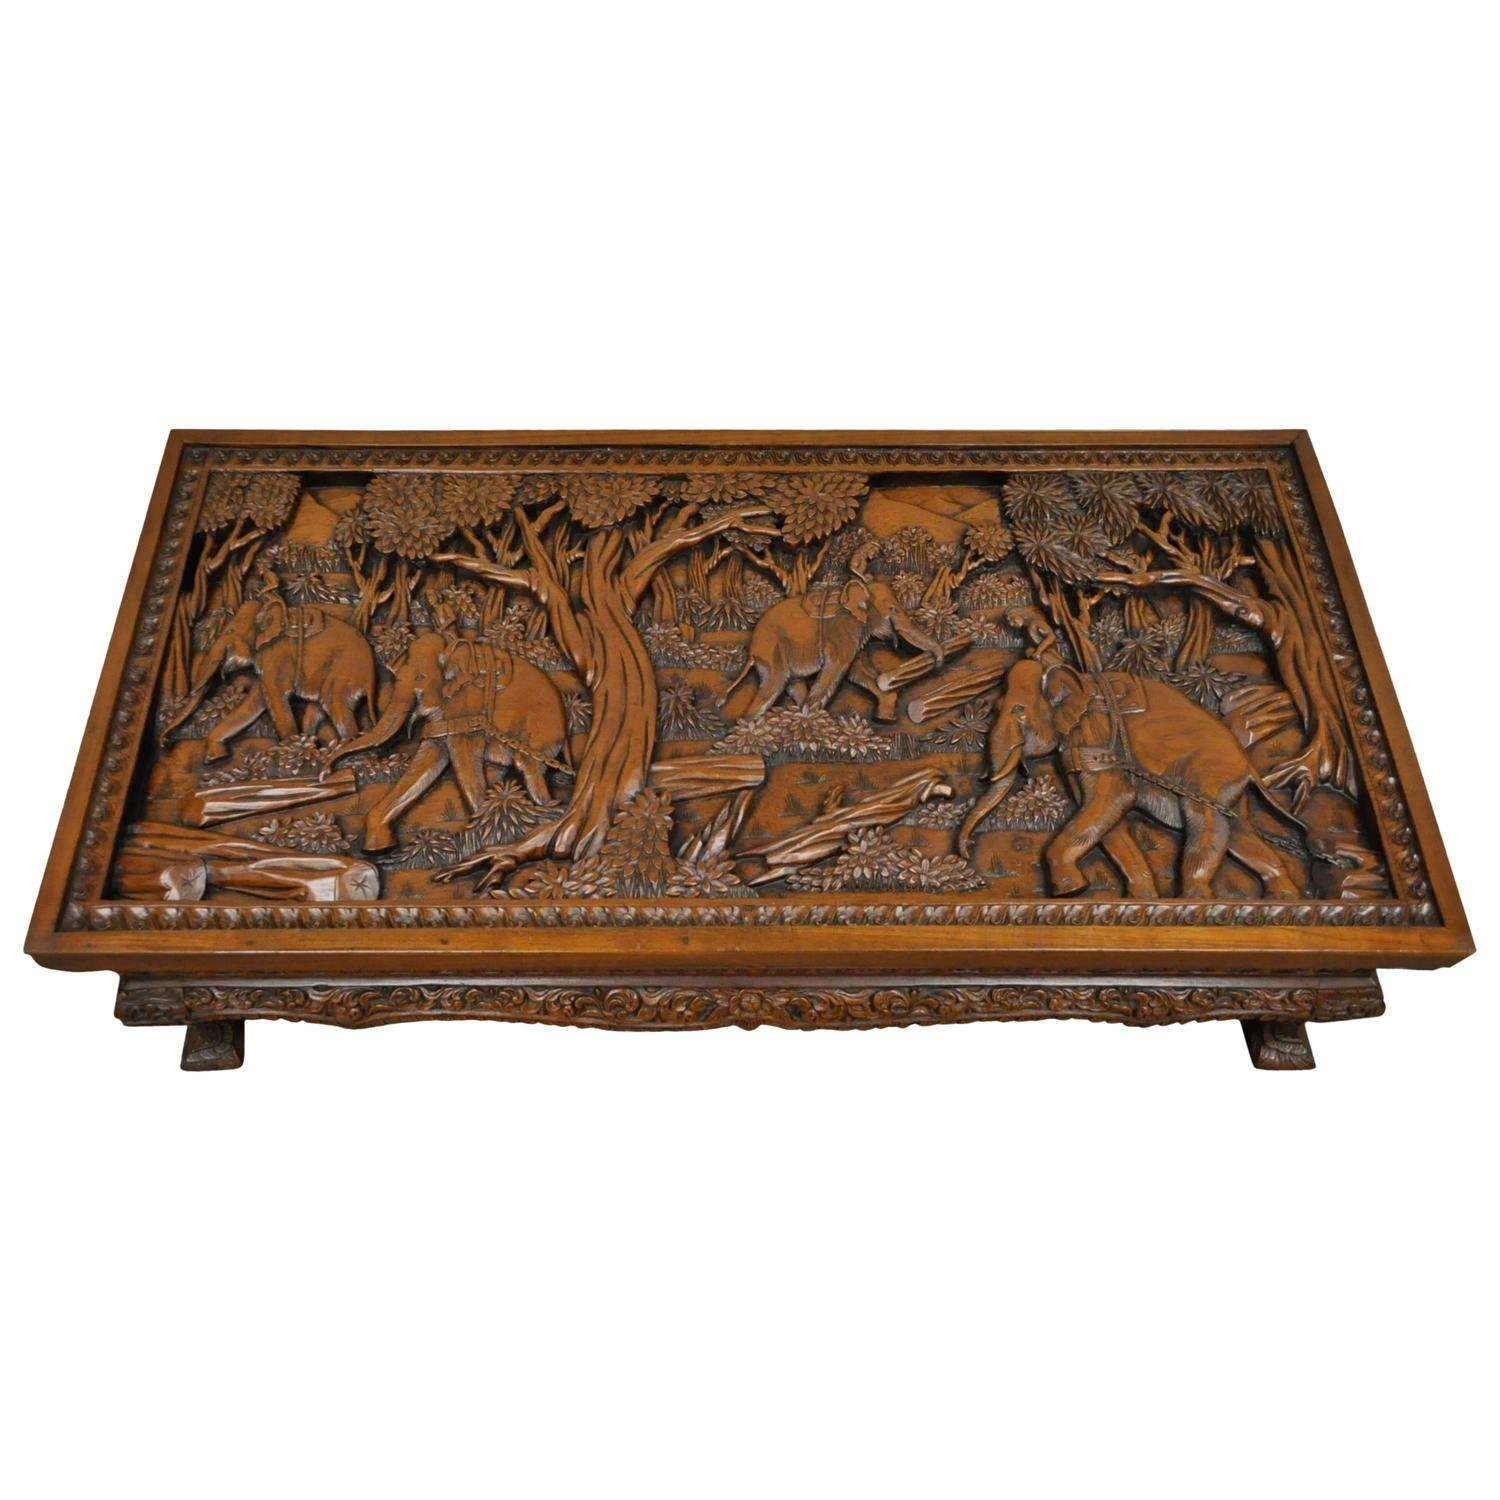 20Th Century Vietnamese Hand-Carved Asian Coffee Low Table With intended for Elephant Coffee Tables (Image 1 of 30)